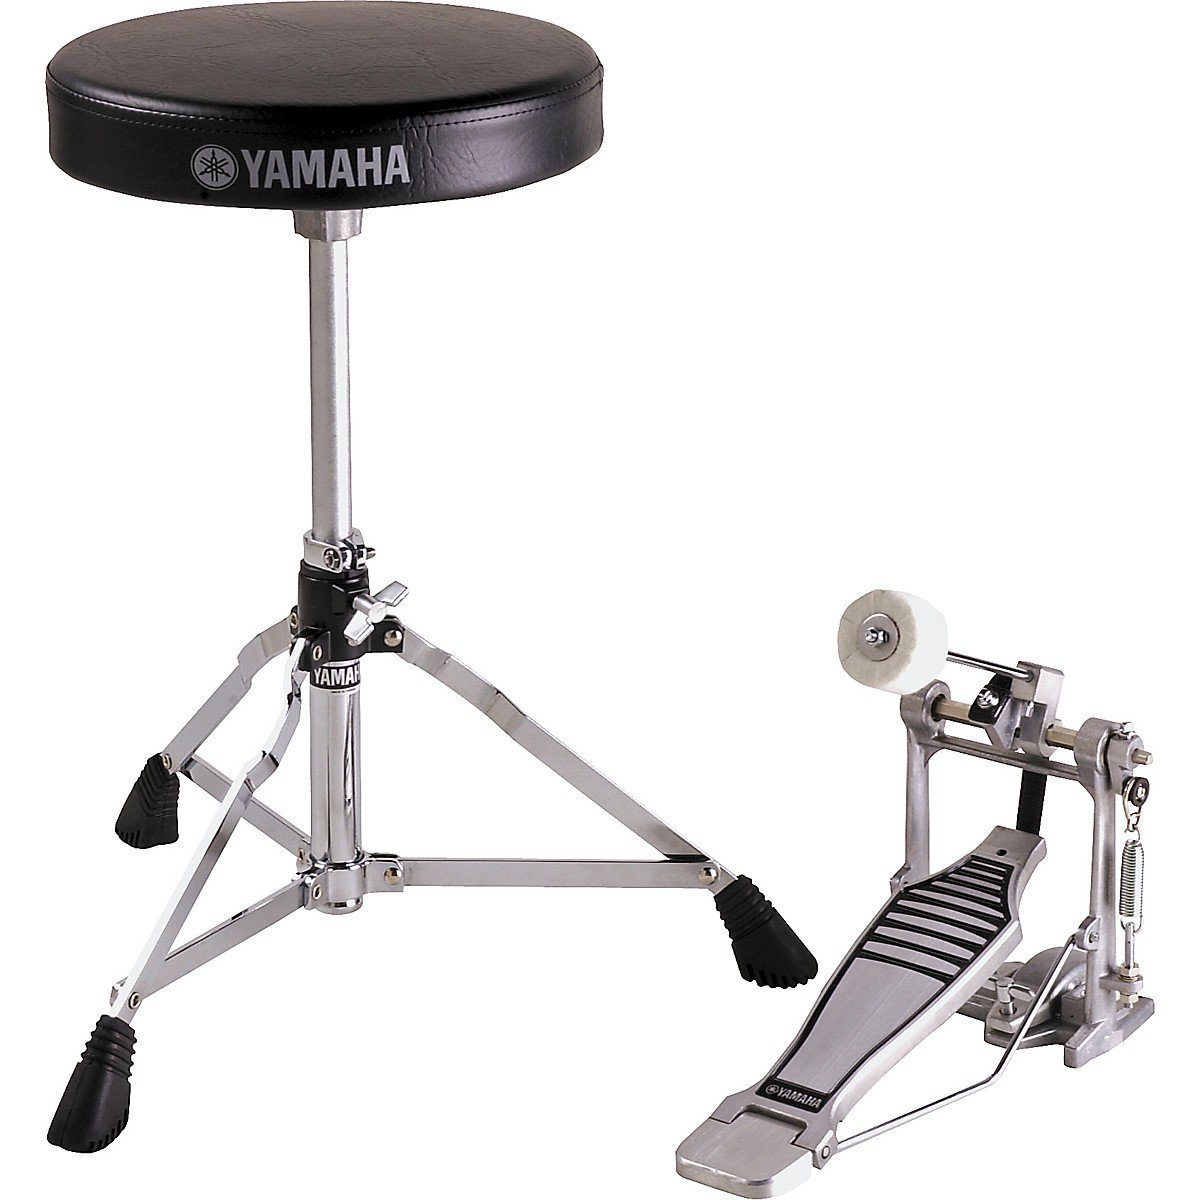 Yamaha FP-6110A and DS-550; Foot Pedal and Drum Throne PKG by YAMAHA